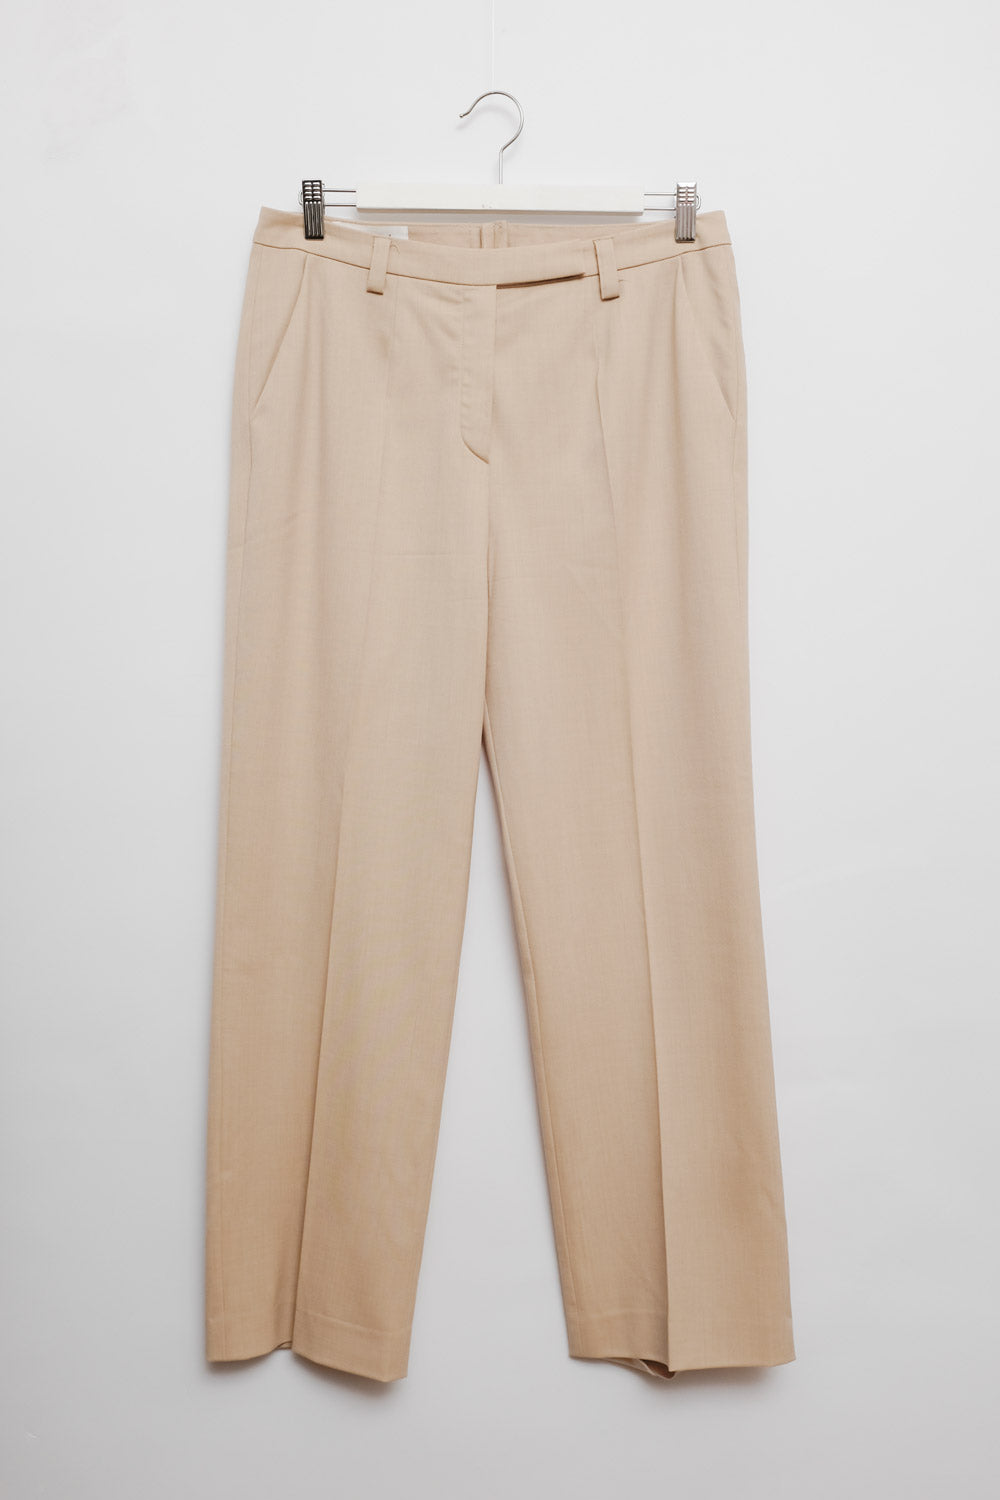 0017_VINTAGE ESCADA MARLENE WOOL PANTS